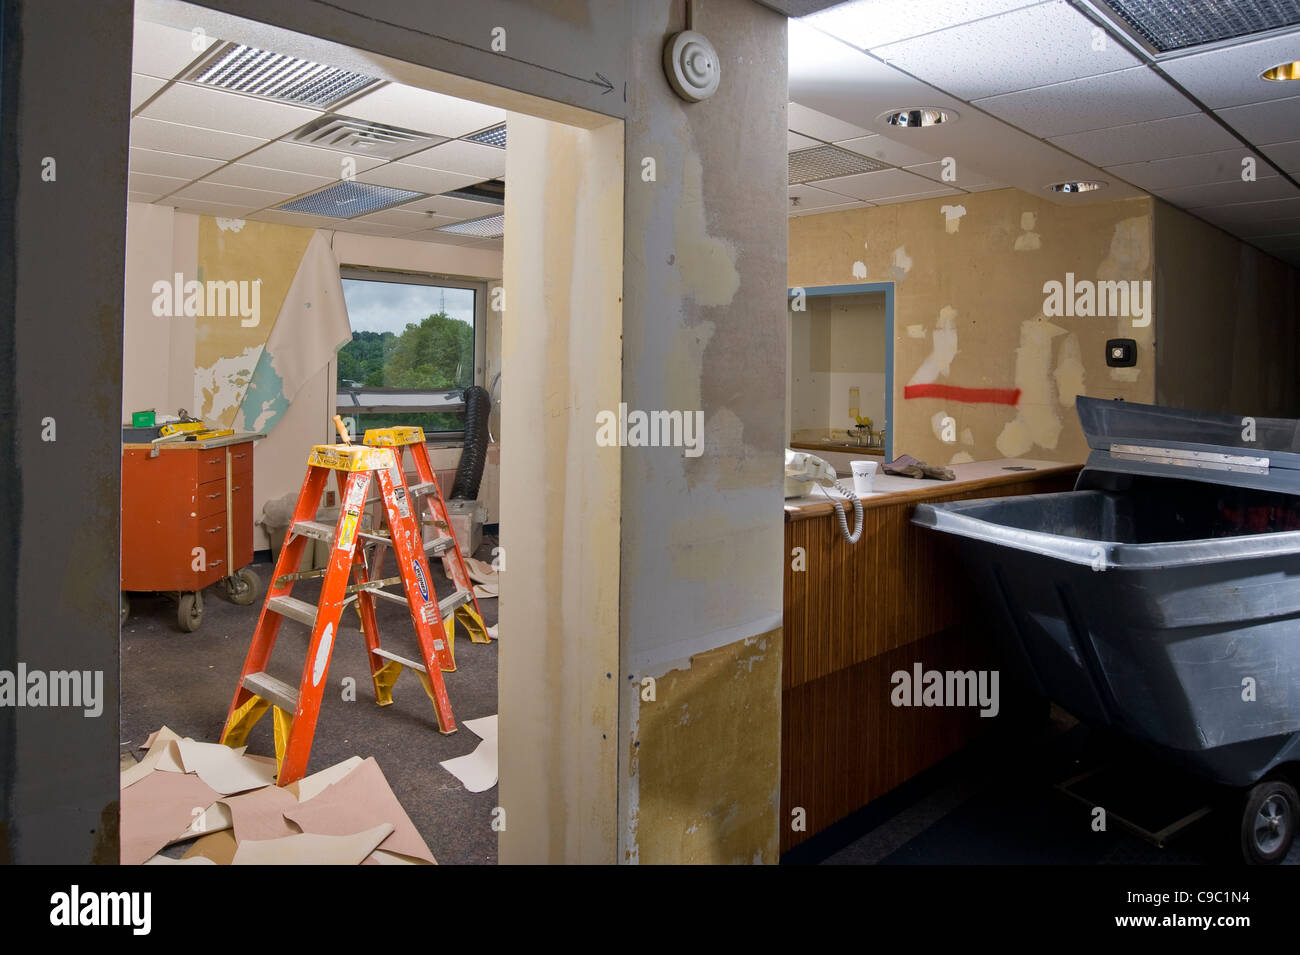 Construction During Office Renovation - Stock Image